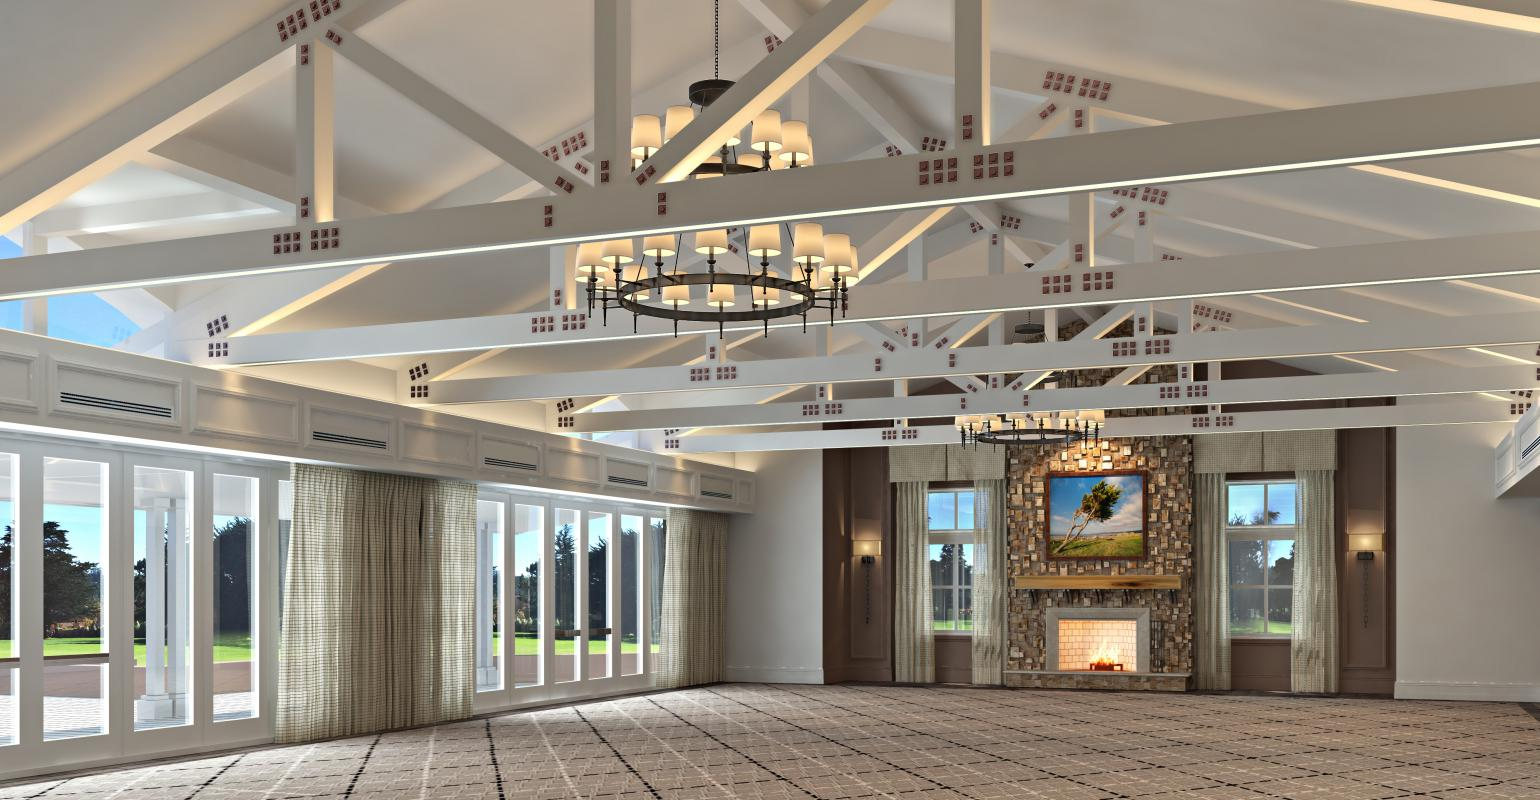 More Meeting E Rooms At The Lodge Pebble Beach